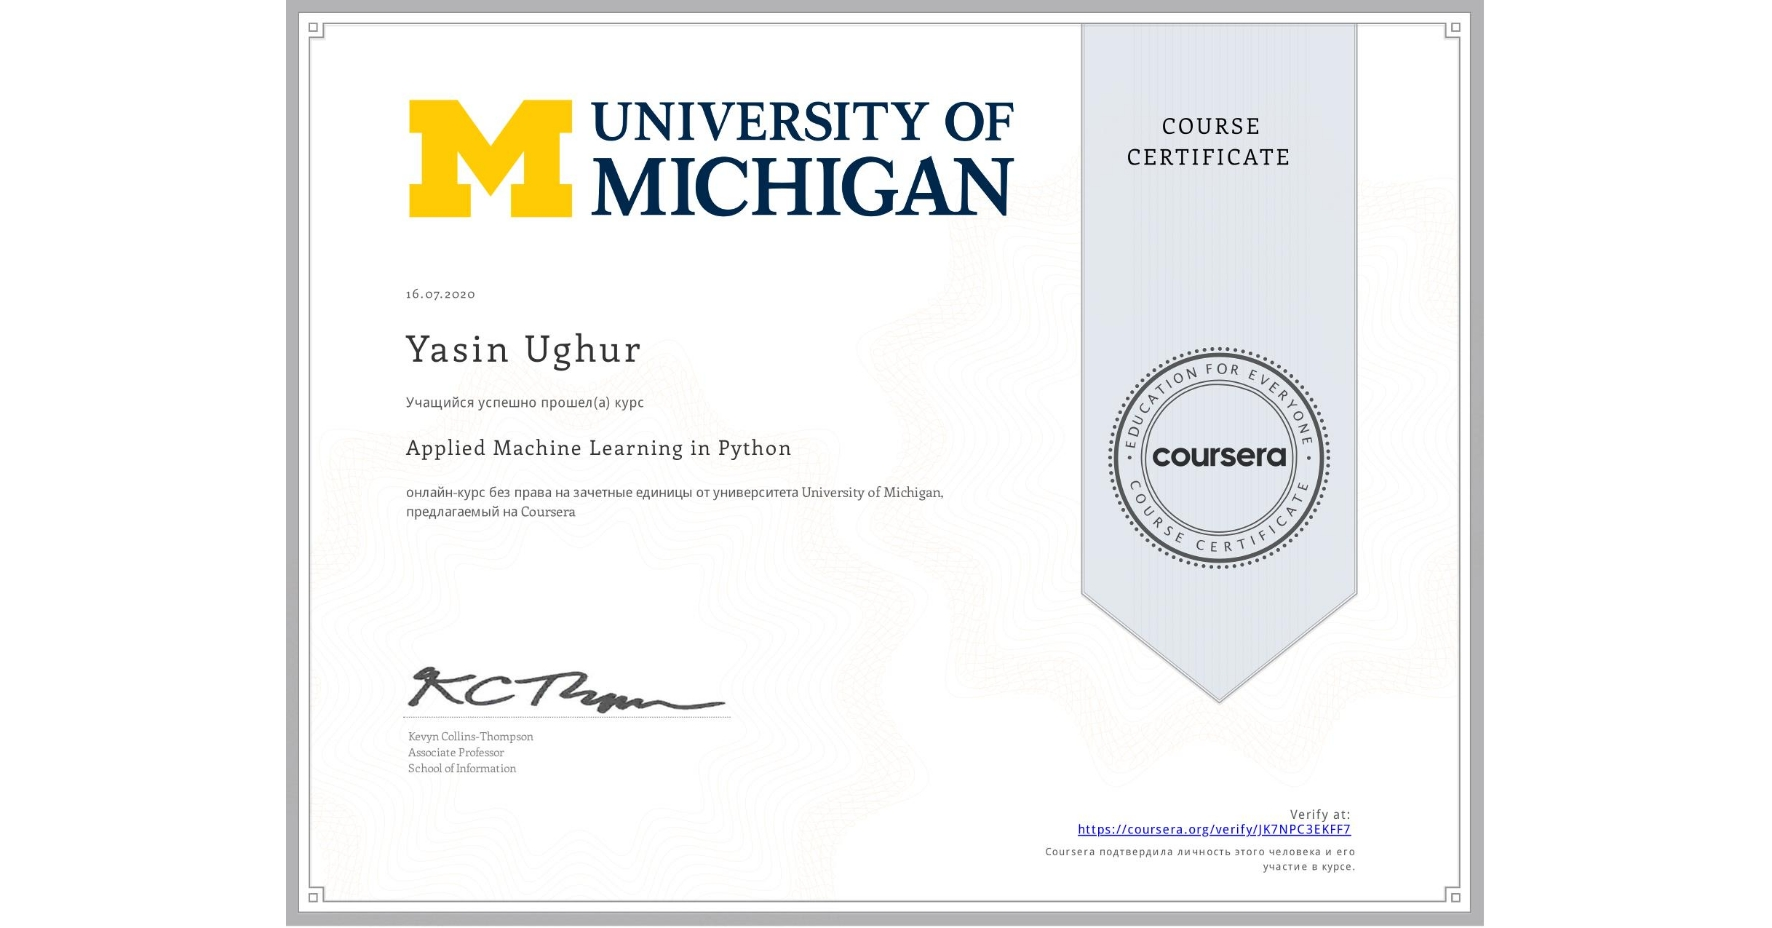 View certificate for Yasin Ughur, Applied Machine Learning in Python, an online non-credit course authorized by University of Michigan and offered through Coursera